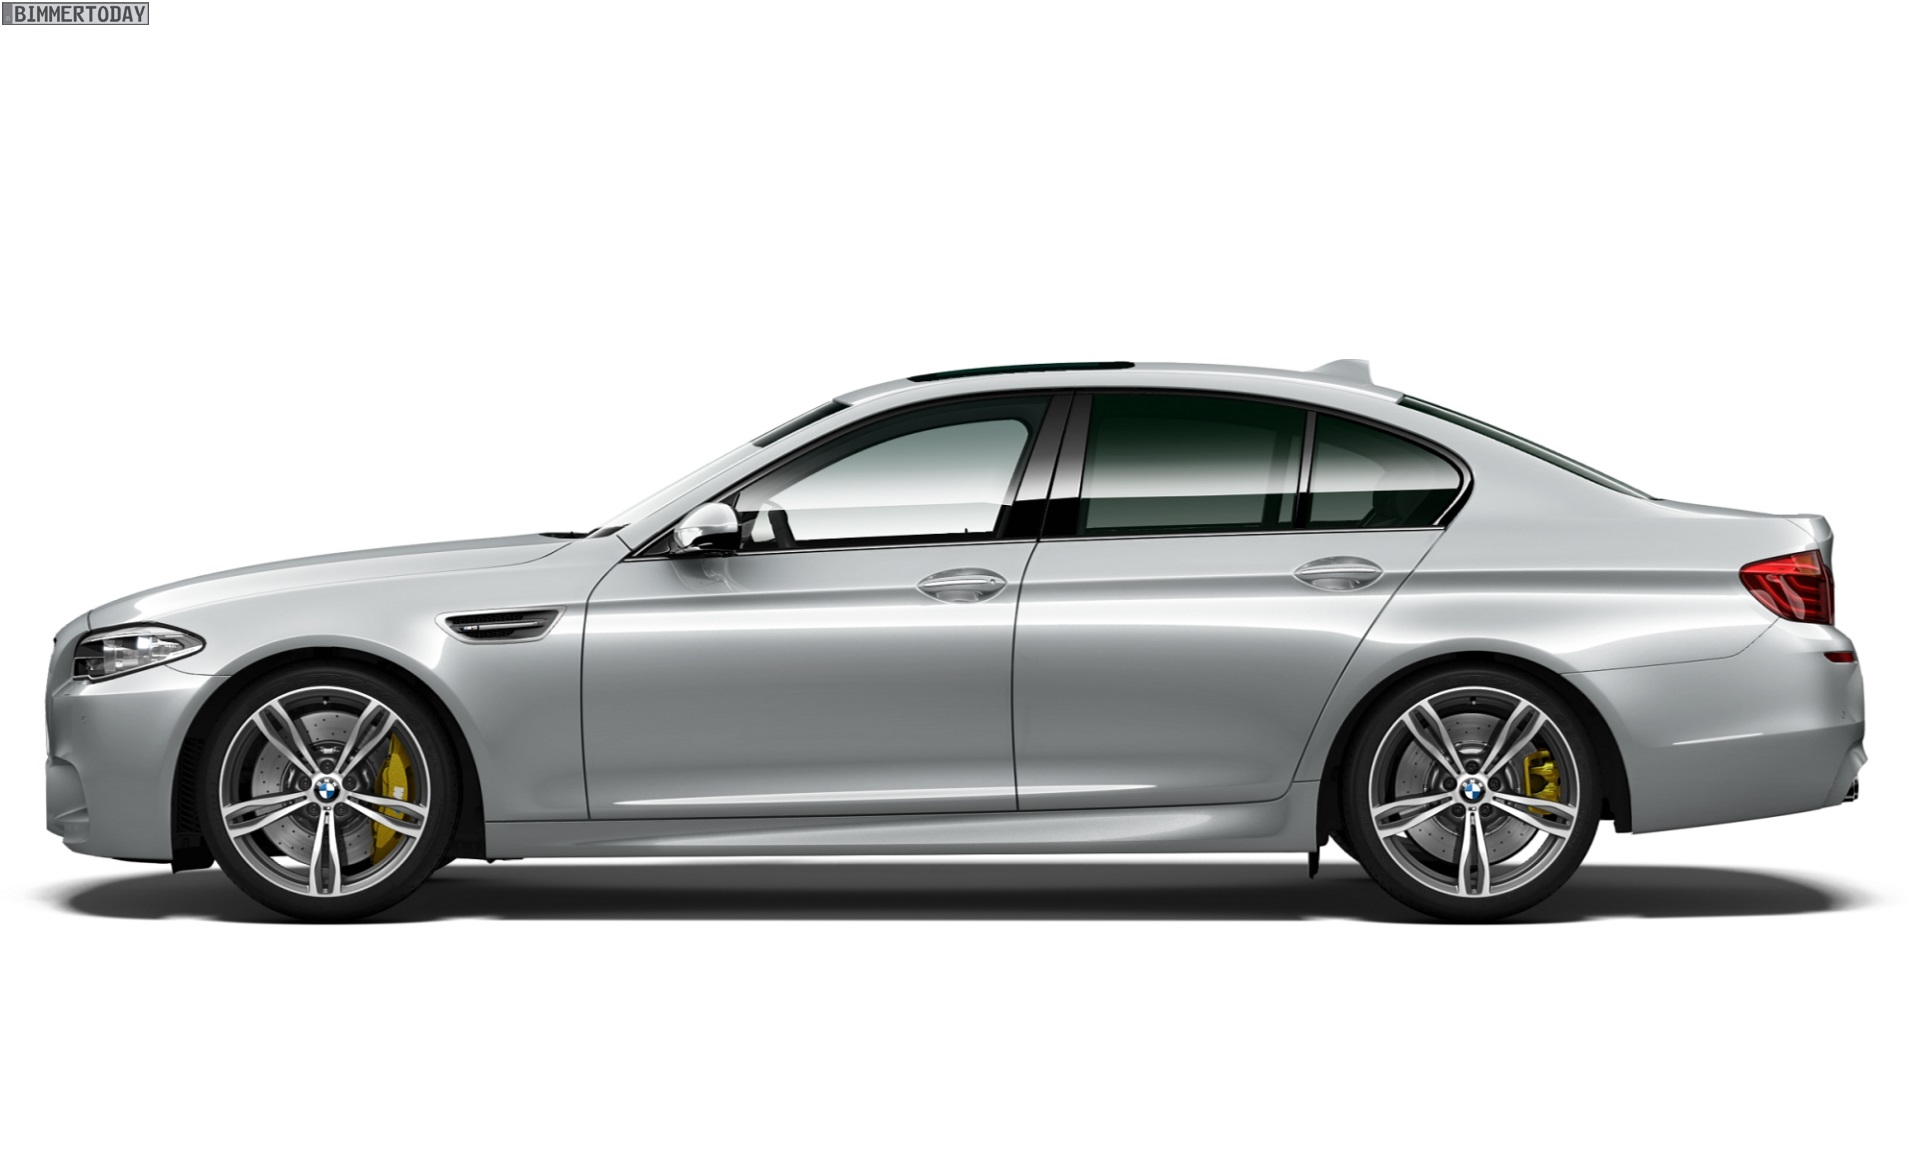 BMW-M5-Pure-Metal-Edition-2015-Sondermodell-01